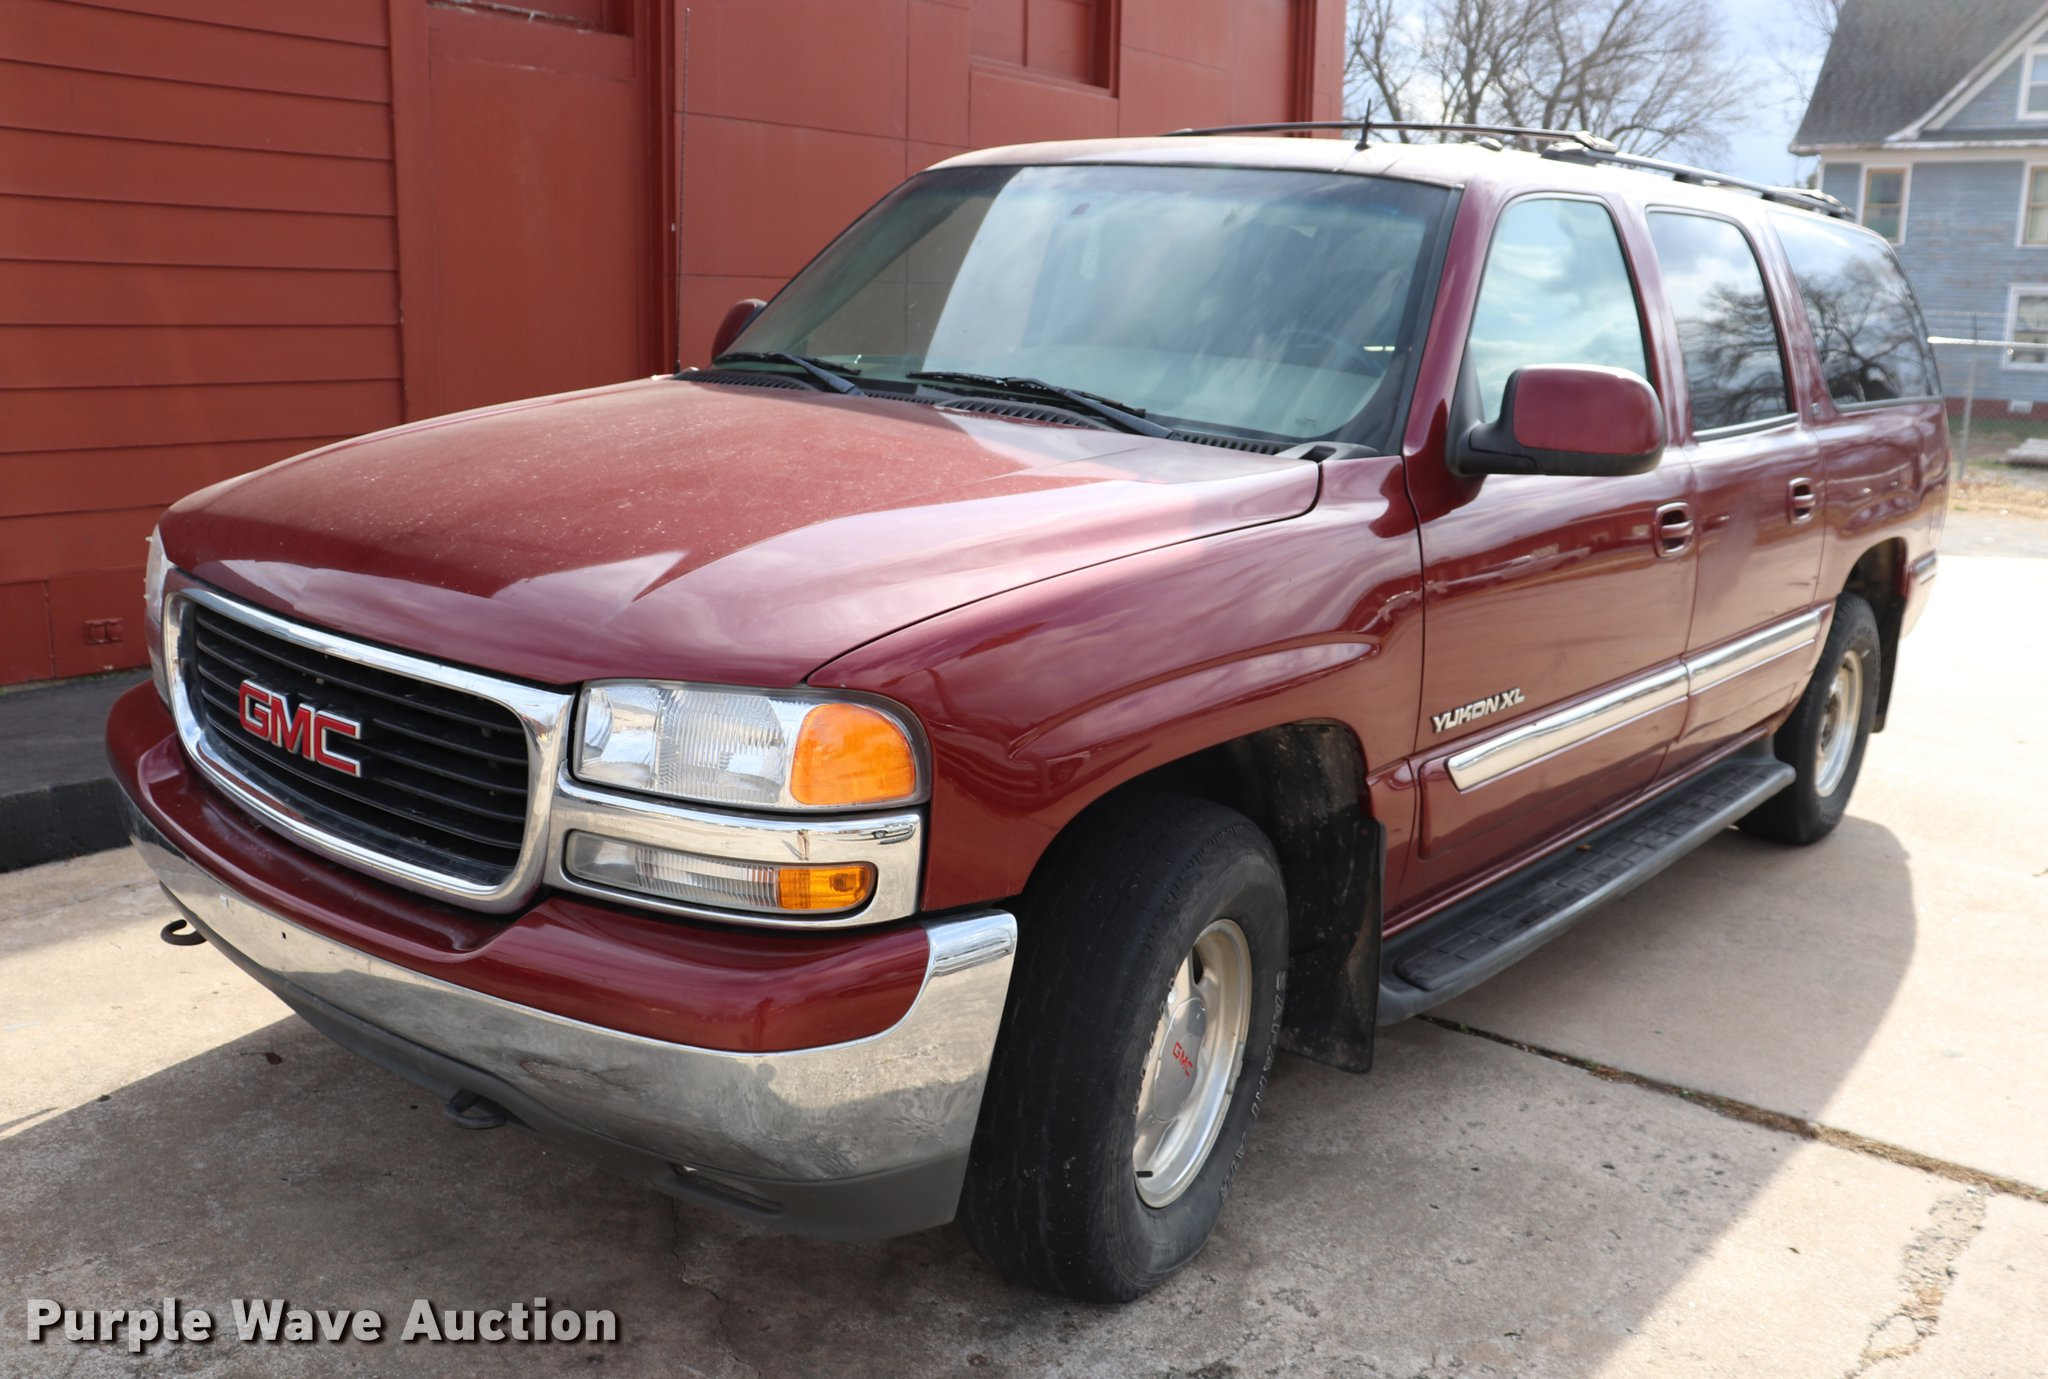 2002 Gmc Yukon Xl In Fredonia Ks Item Ec9279 Sold Purple Wave